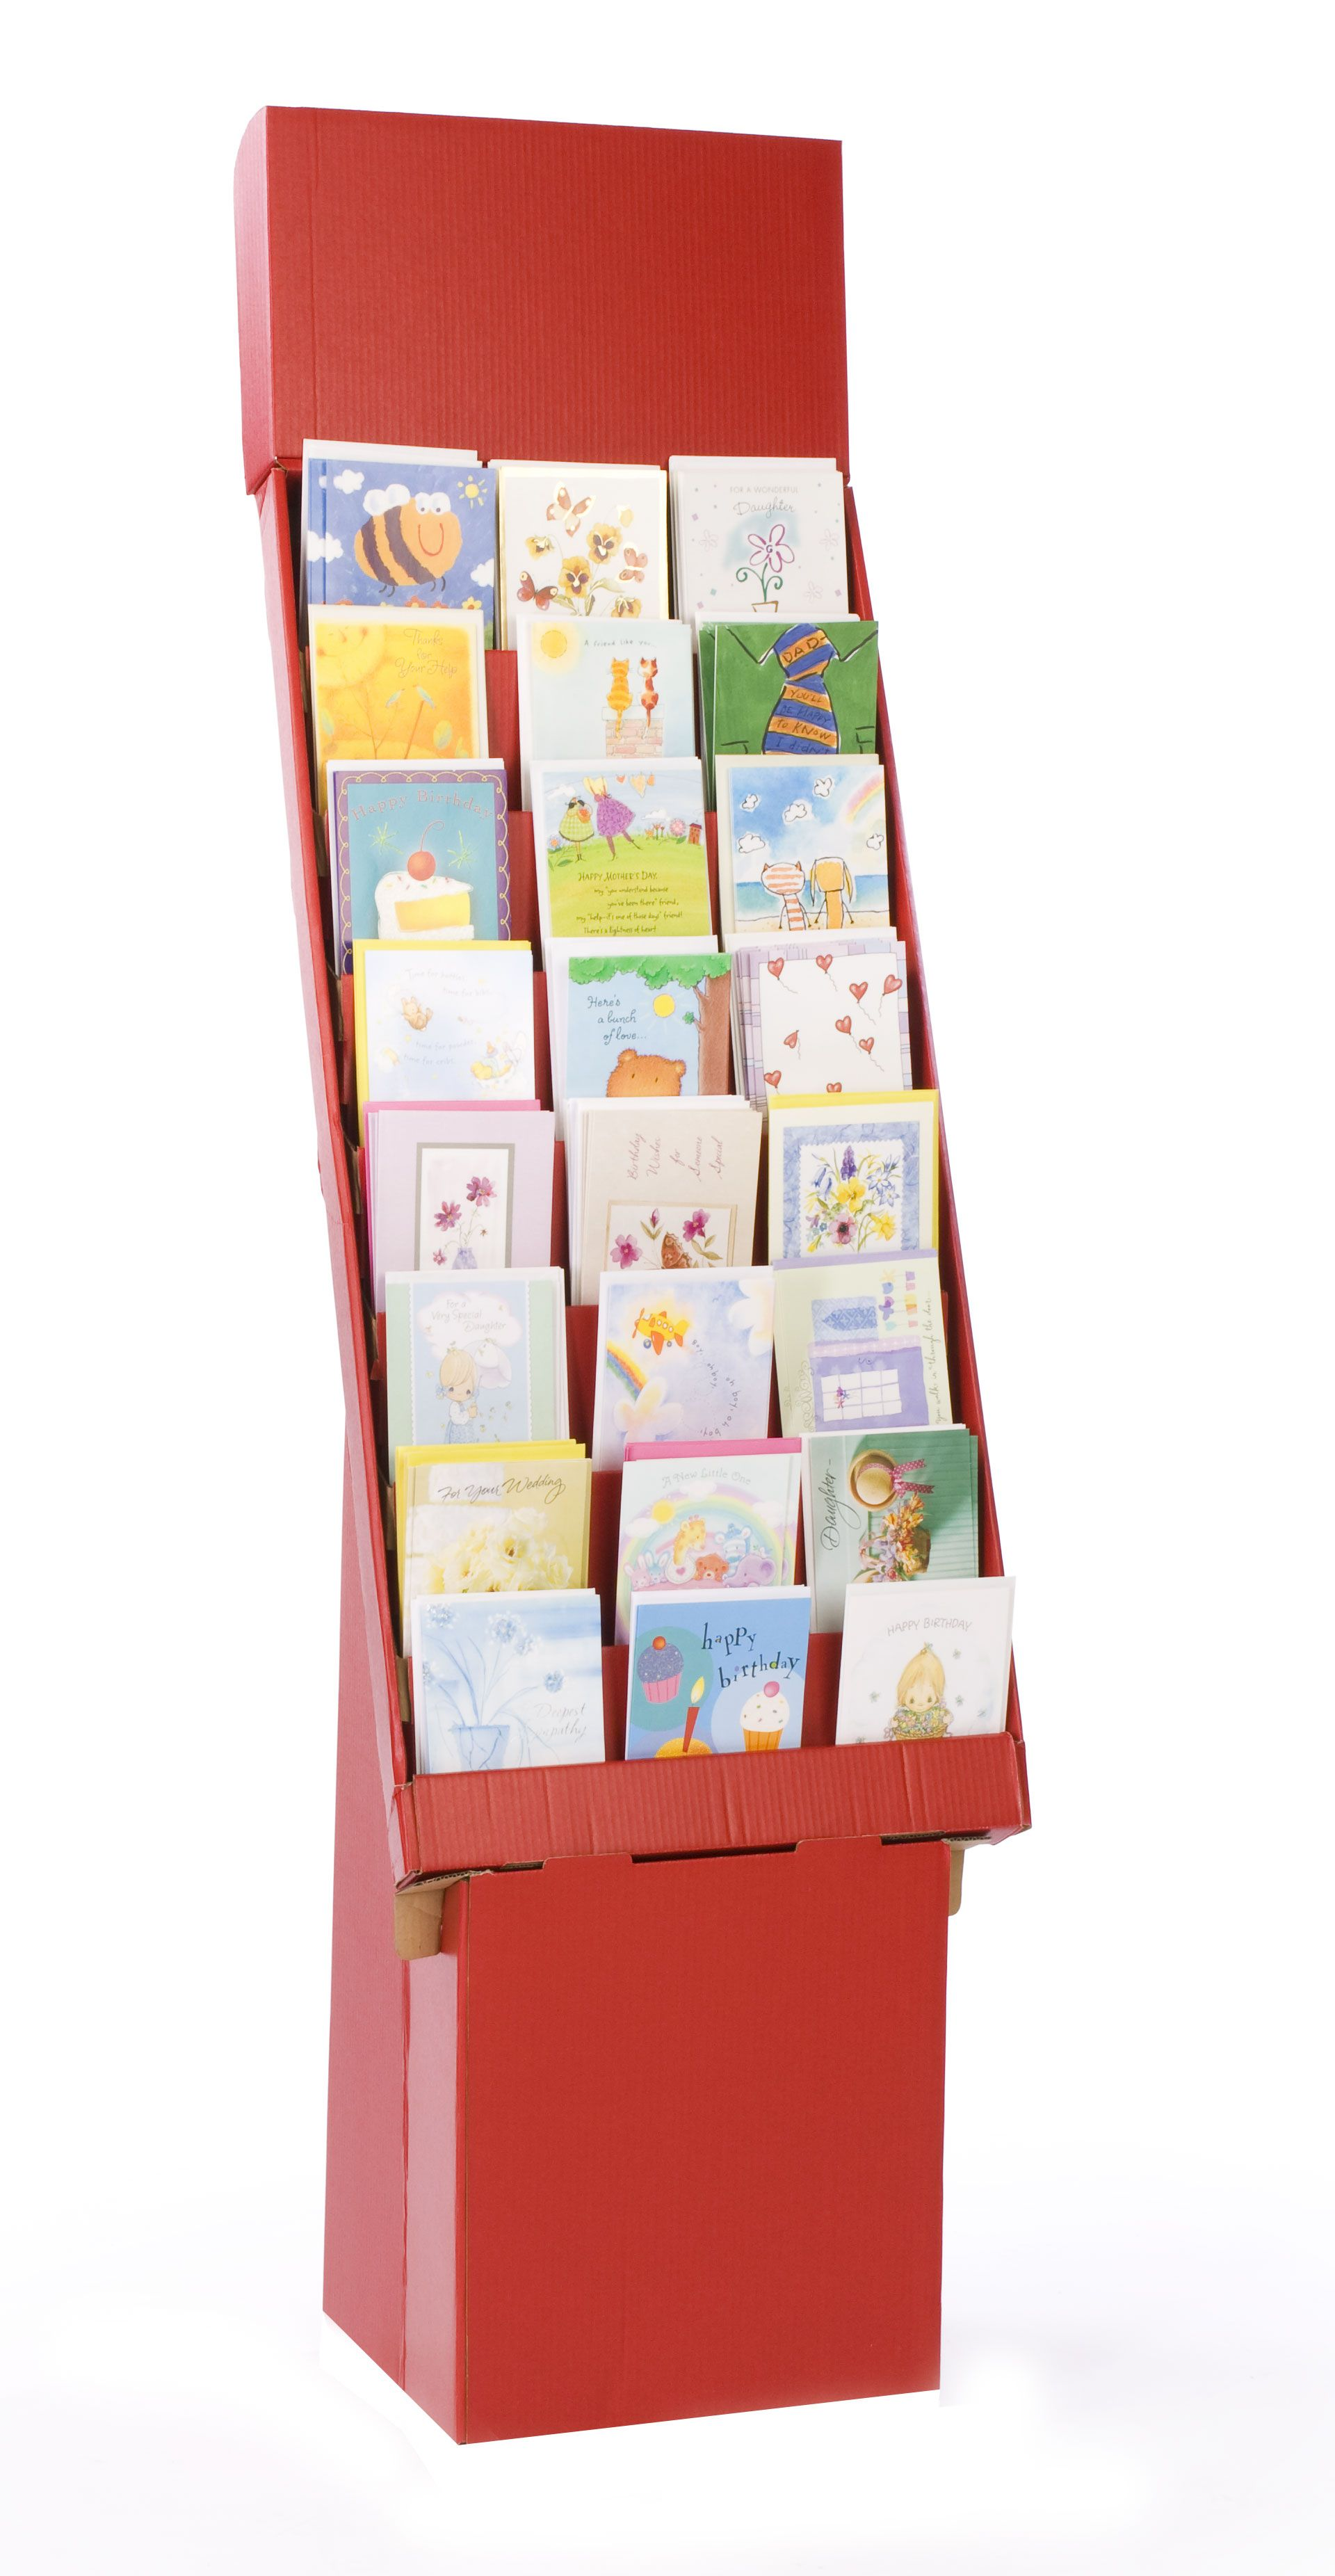 8 tiered cardboard greeting card display for floor removable header 8 tiered cardboard greeting card display for floor removable header red kristyandbryce Gallery